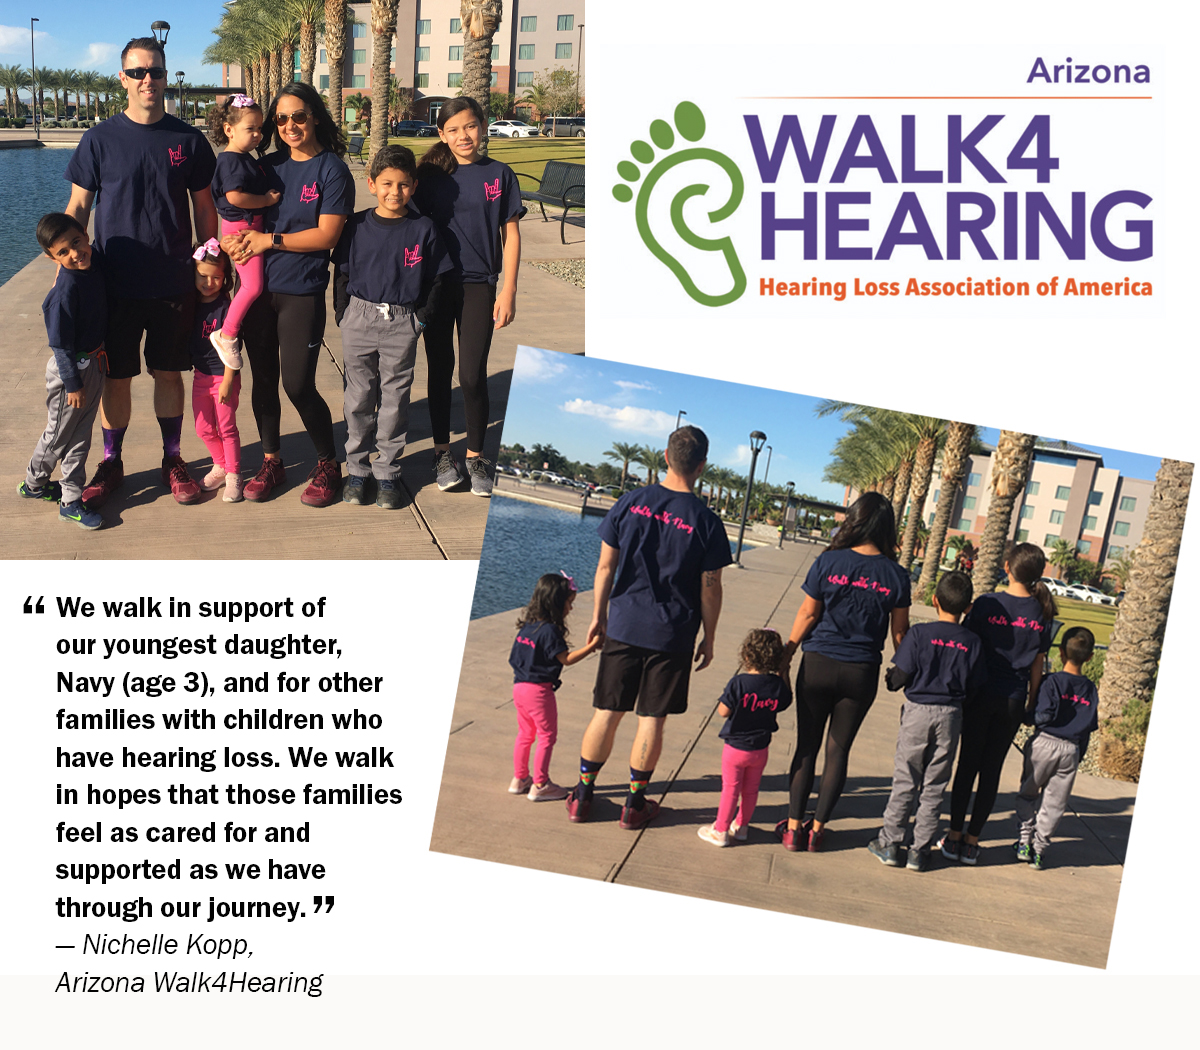 Families at the Arizona Walk4Hearing event